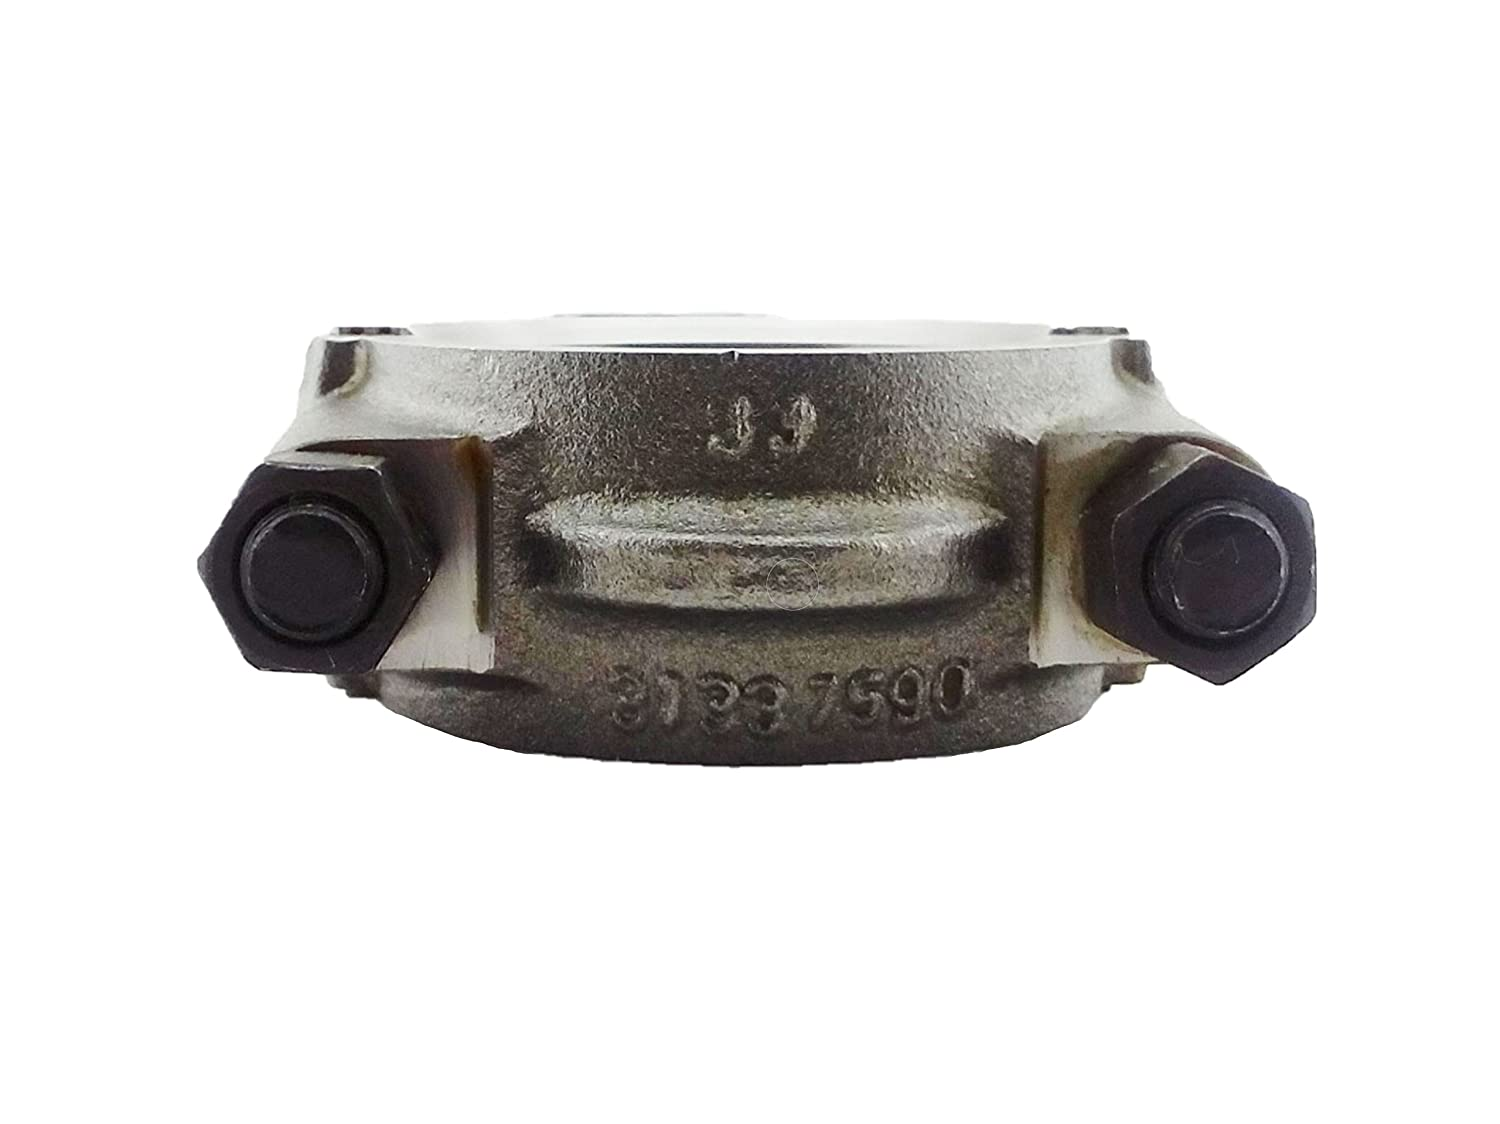 CONNECTING ROD Fits Perkins T4.236 T6.354.4 3637098M91 3641078M91